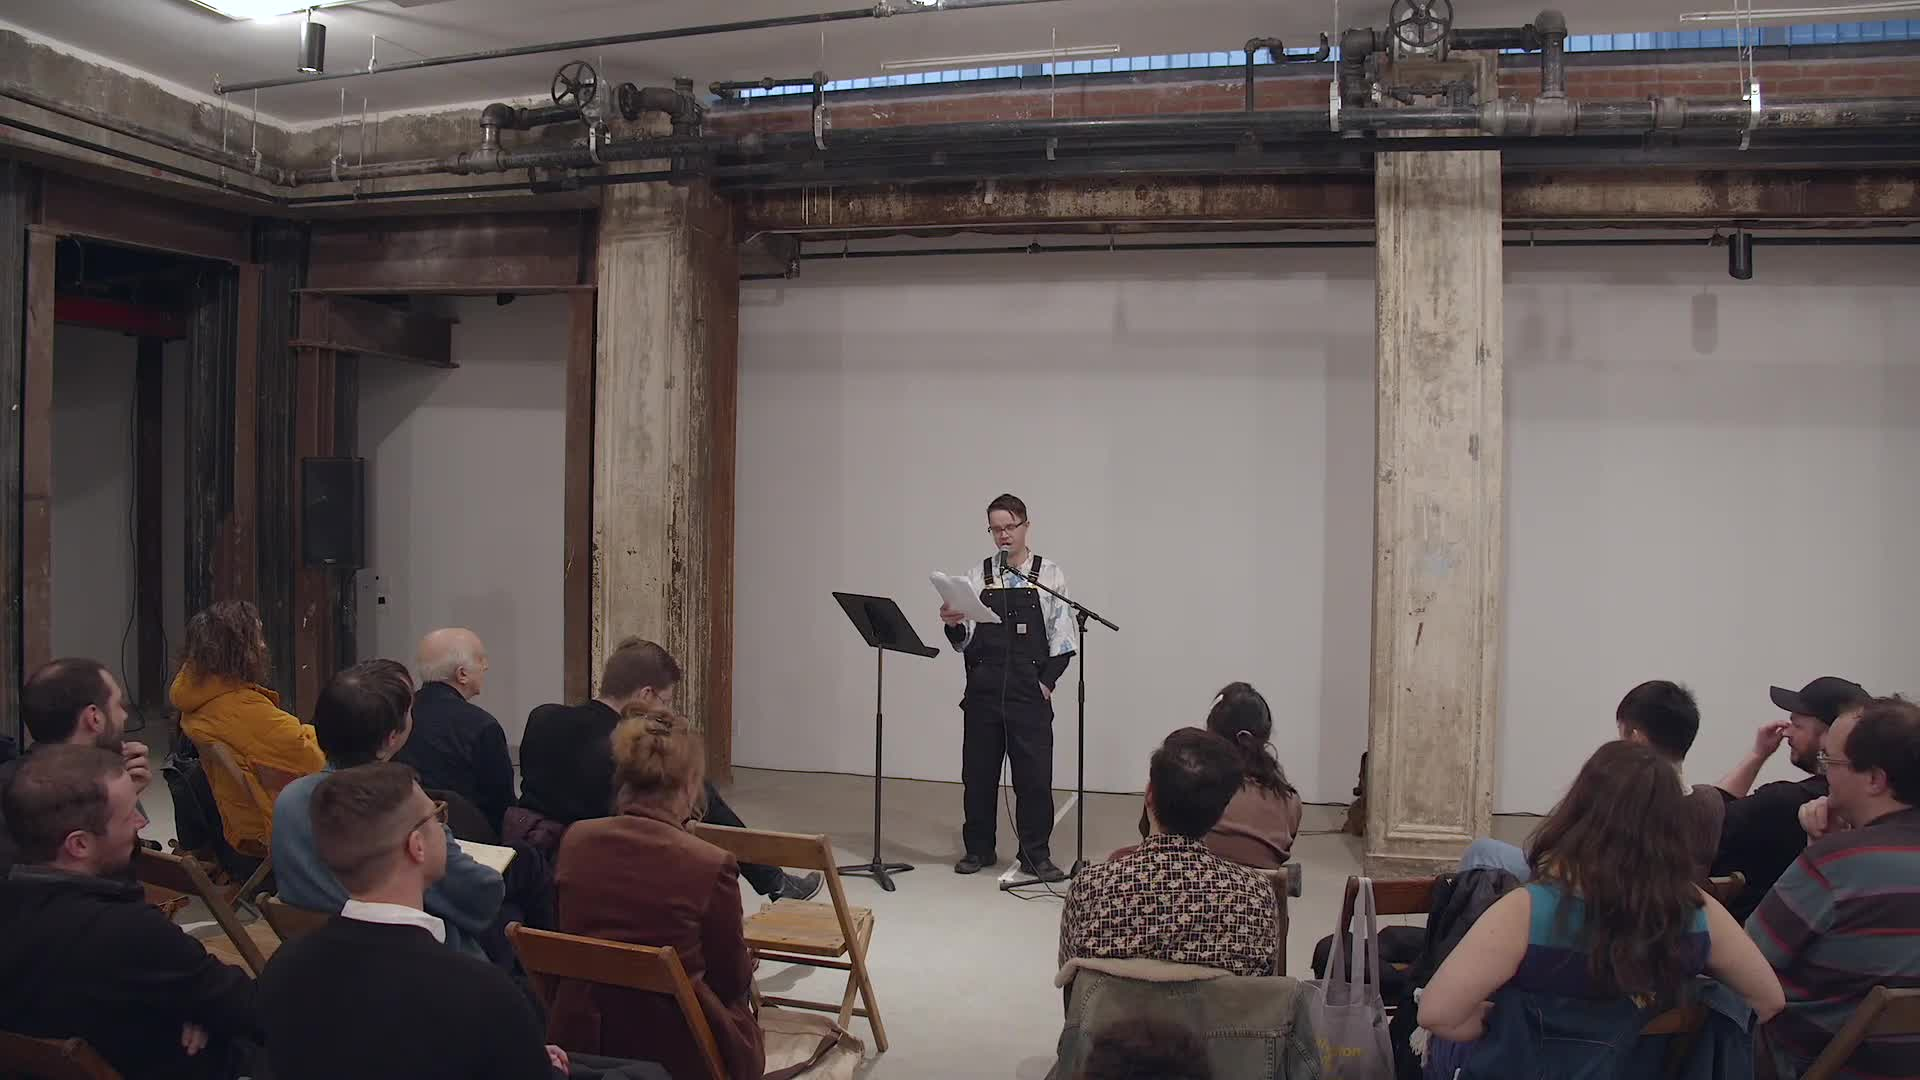 Ted Rees is shown standing against a white wall in a large room with metal columns, facing the camera and an audience seated in wooden folding chairs.  He reads from a stack of papers in his right hand and speaks into a microphone.  The camera occasionally zooms in to show him from the waist up, then returns to filming the whole room.